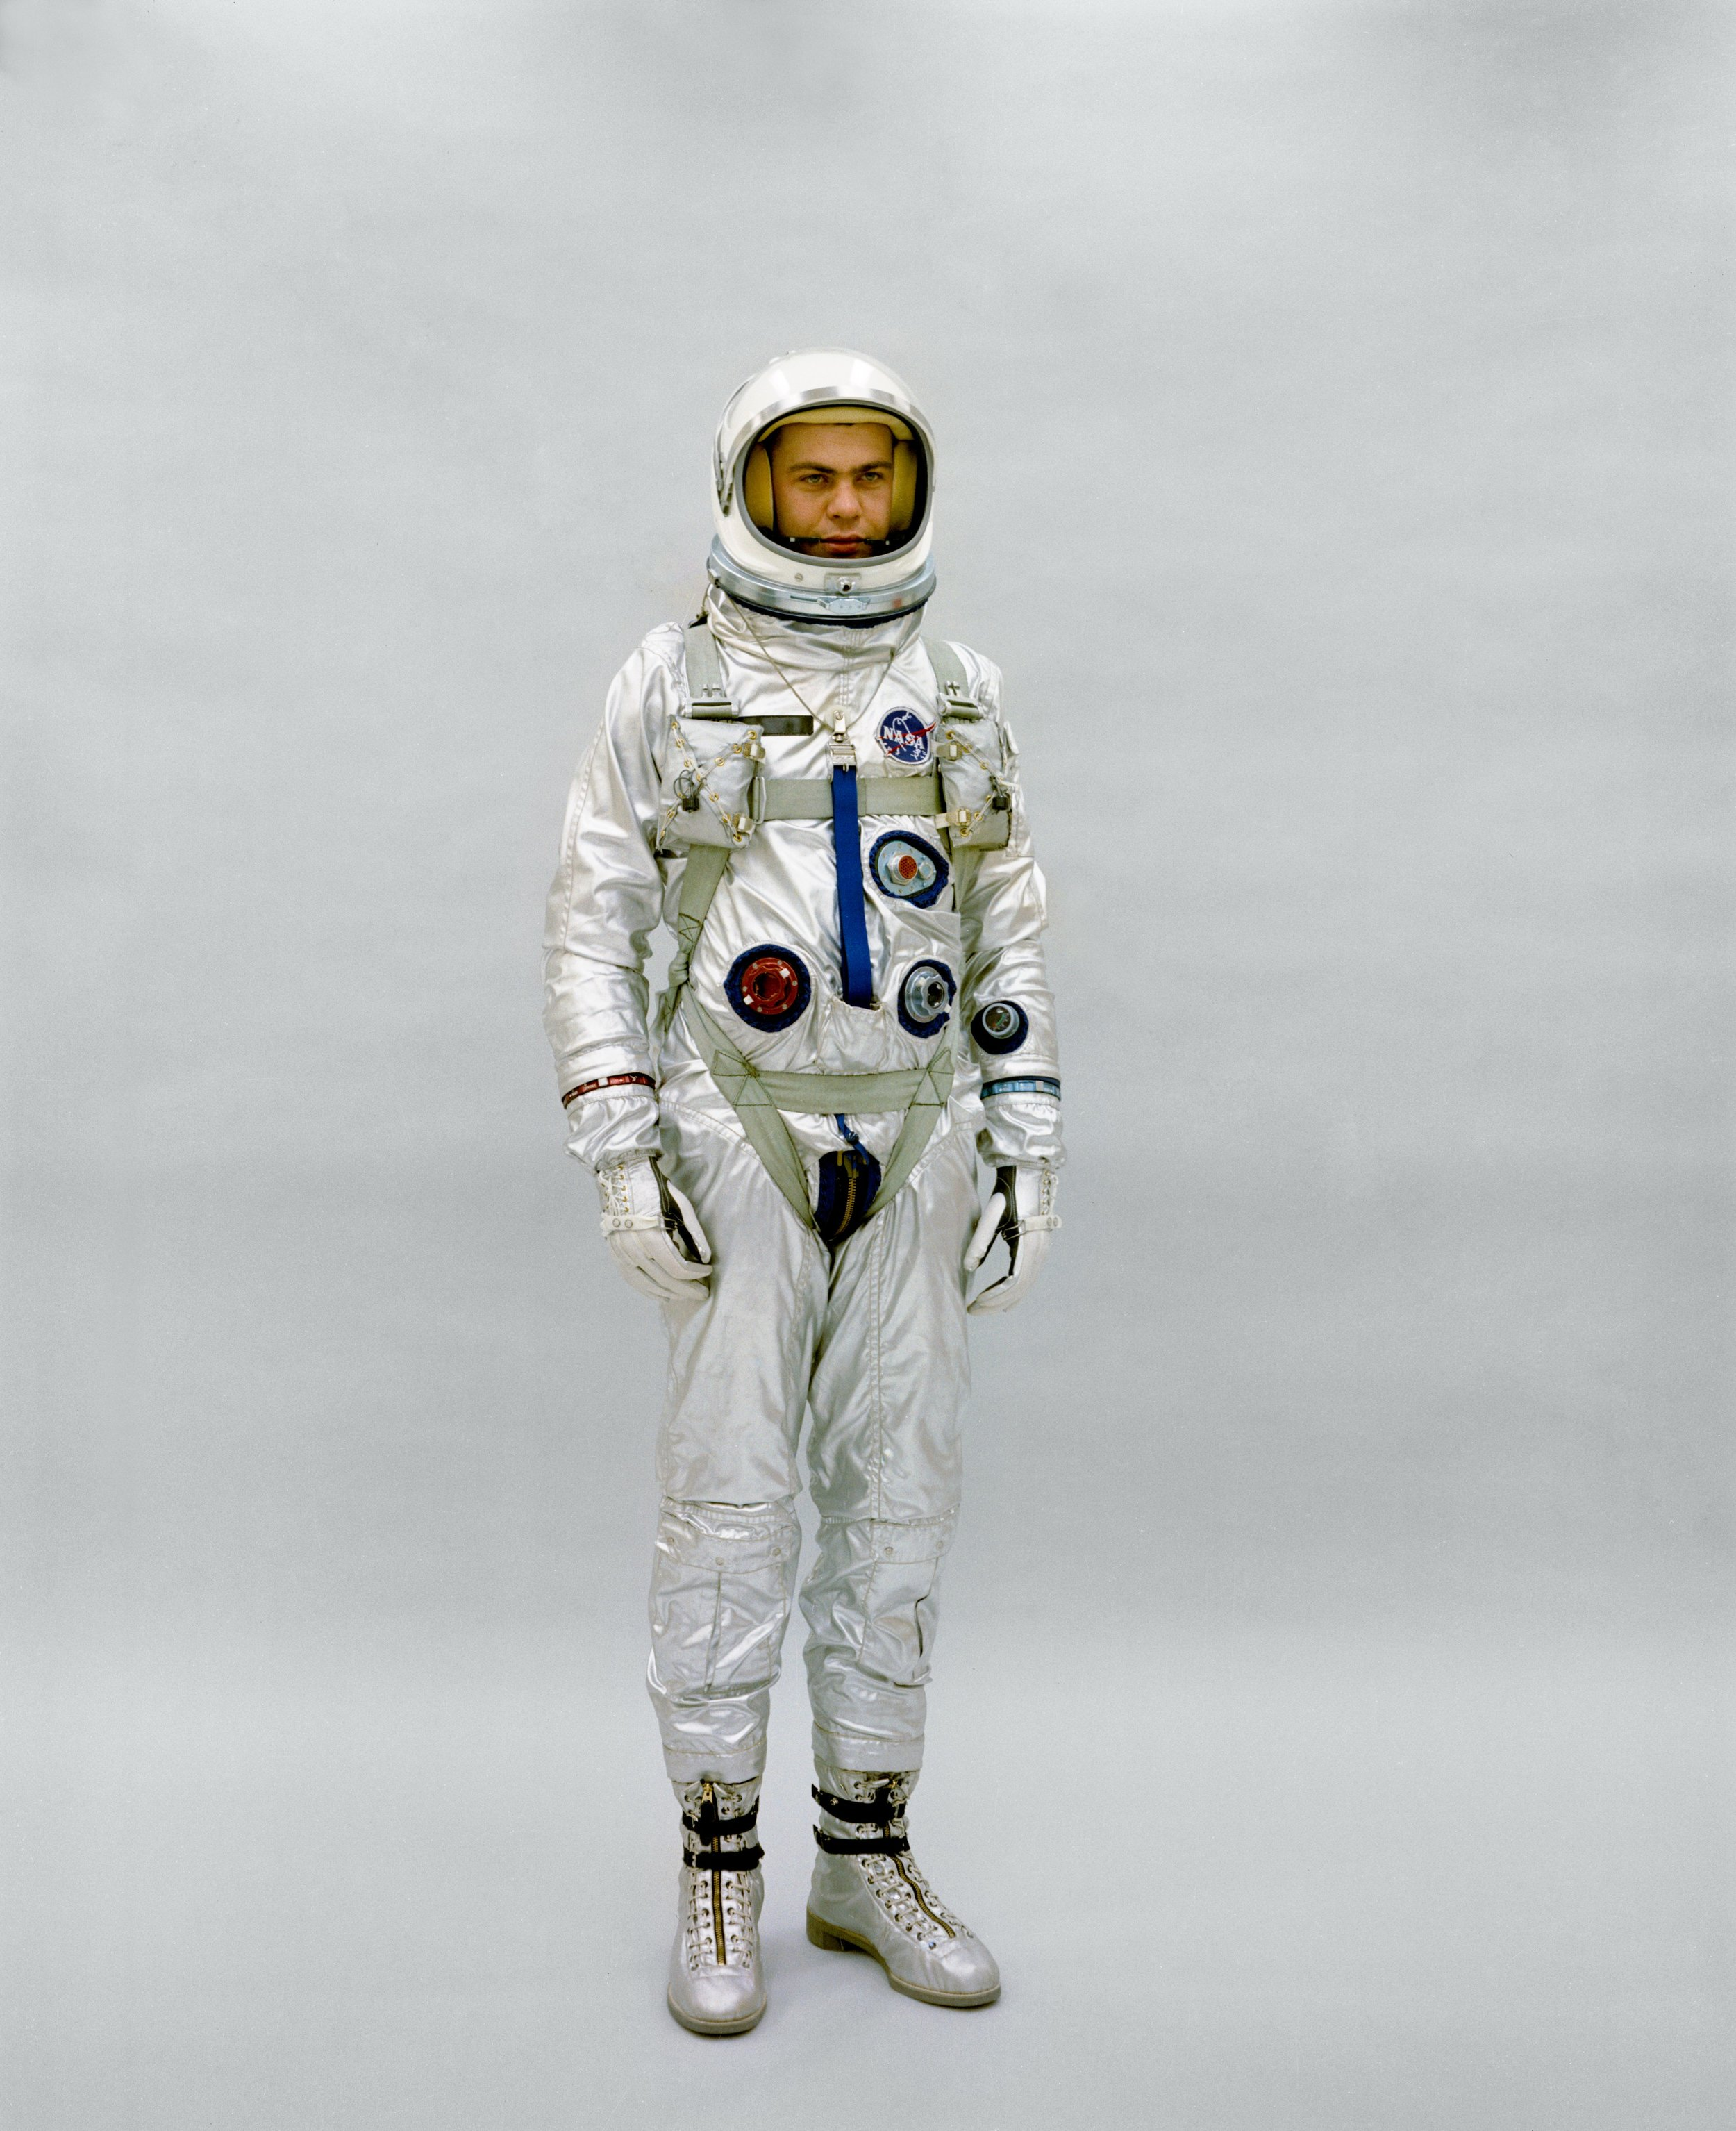 GEMINI G-2C ASTRONAUT TRAINING SUIT 1964